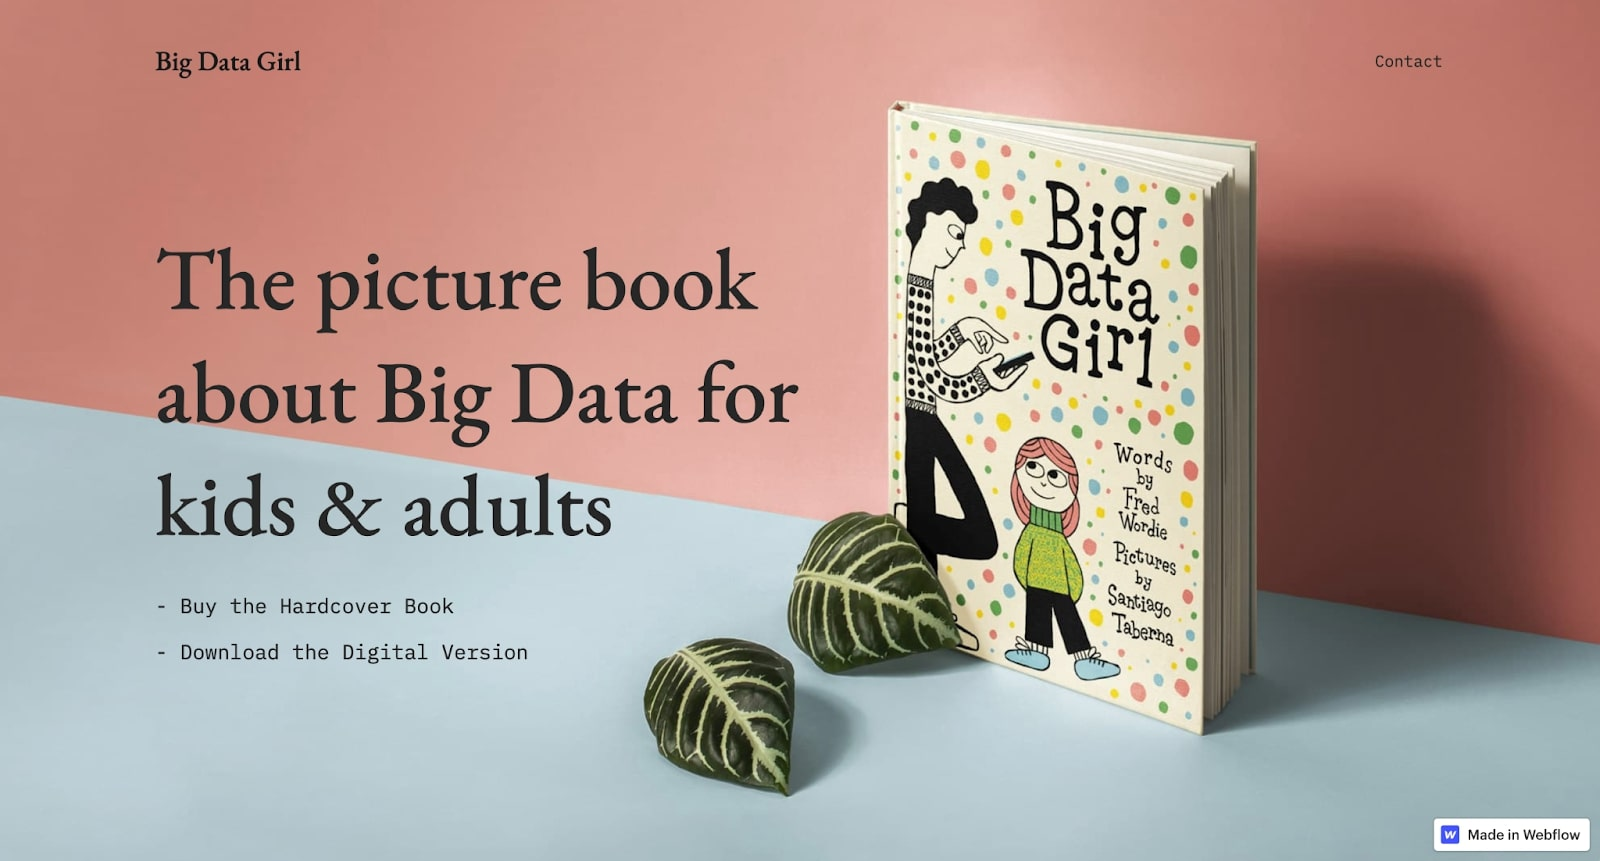 An image of the Big Data Girl website home page.